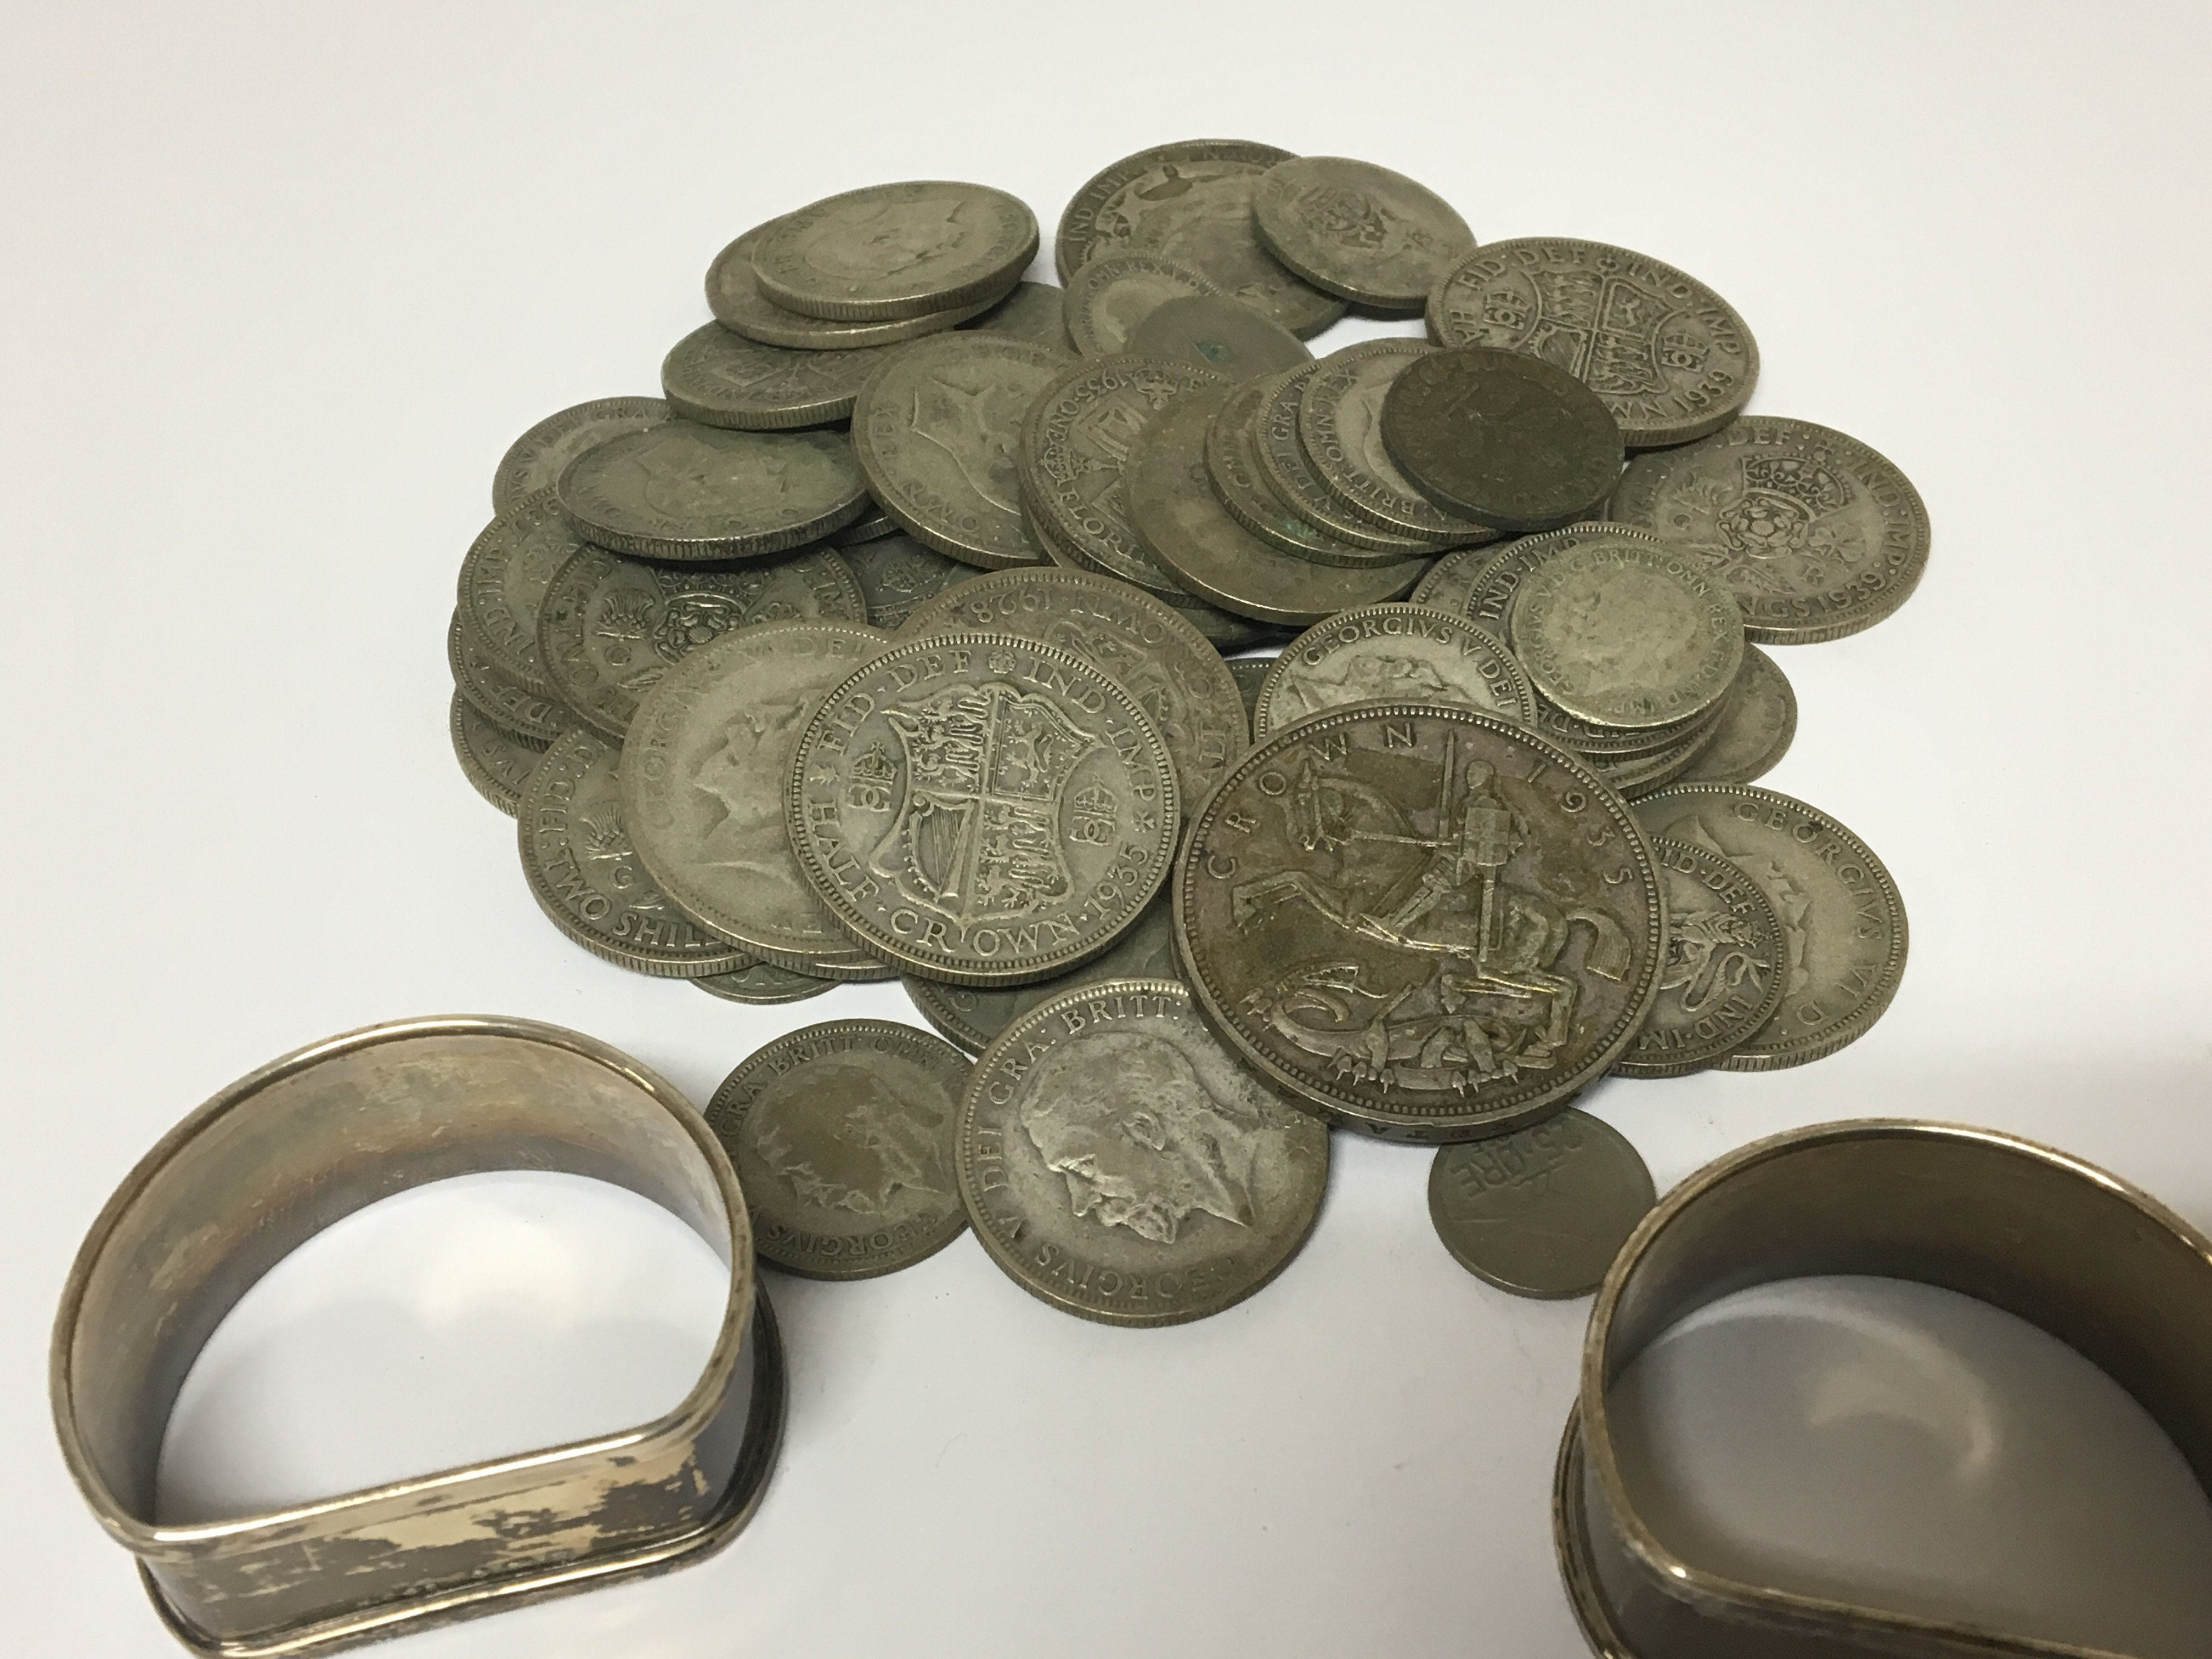 Lot 599 - A collection of used circulated pre 1946 British Coinage and two silver napkin rings.